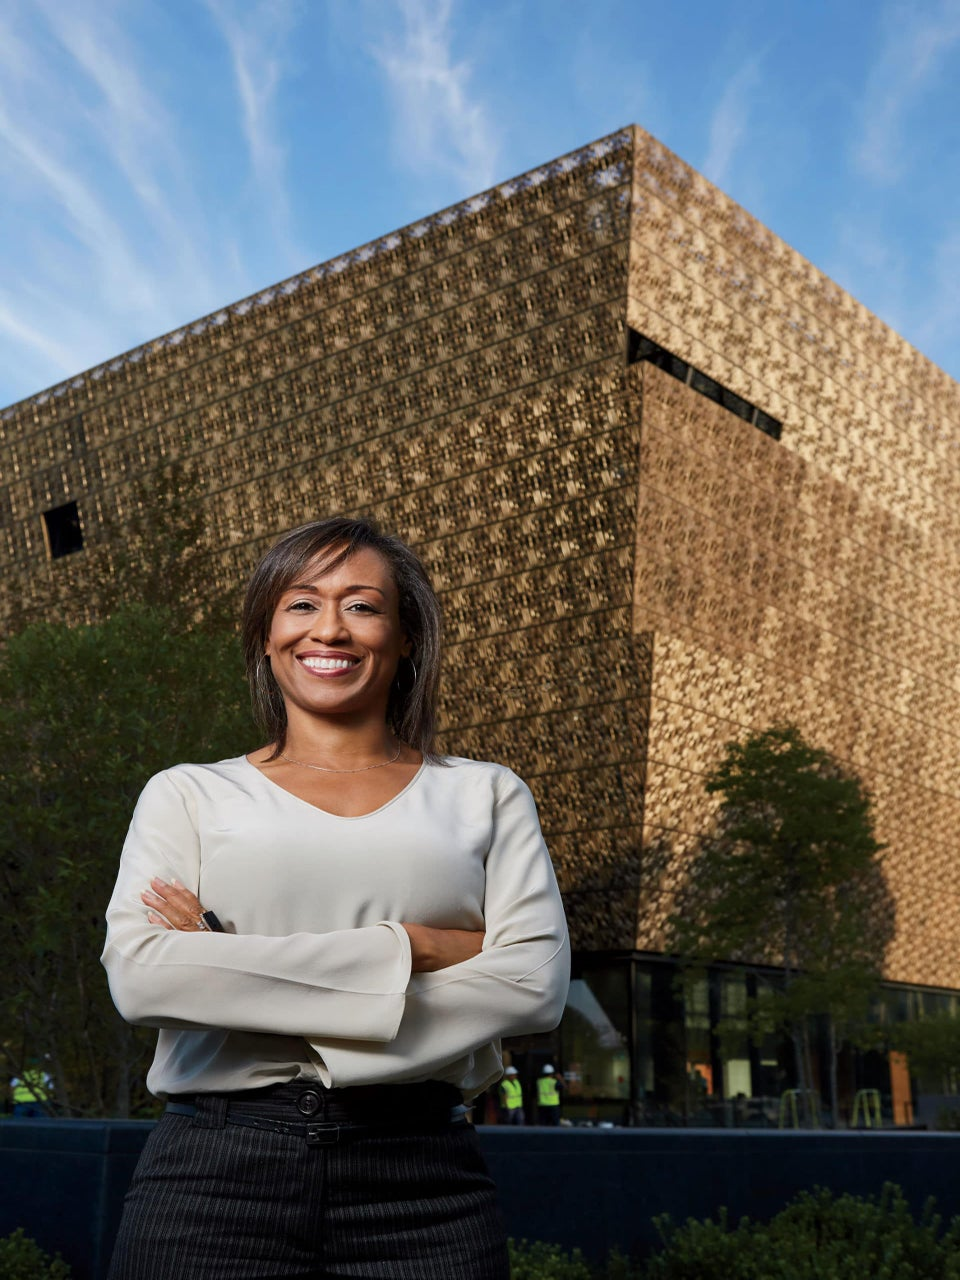 This Black Woman Architect Boldly Honors The Past While Mentoring A New Generation